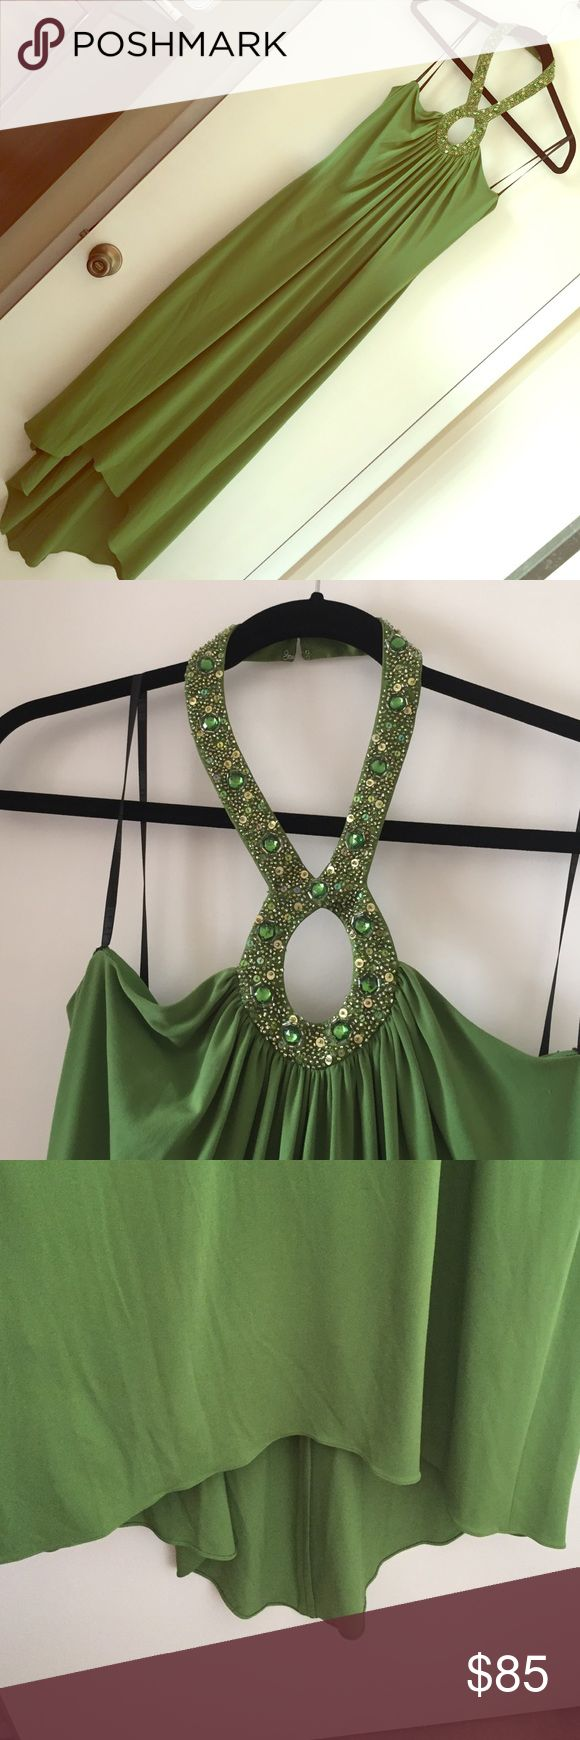 LAUNDRY dress Green halter LAUNDRY dress with beaded sexy neckline. Hi-low midi hemline. Worn only once. In great condition. Laundry by Shelli Segal Dresses High Low